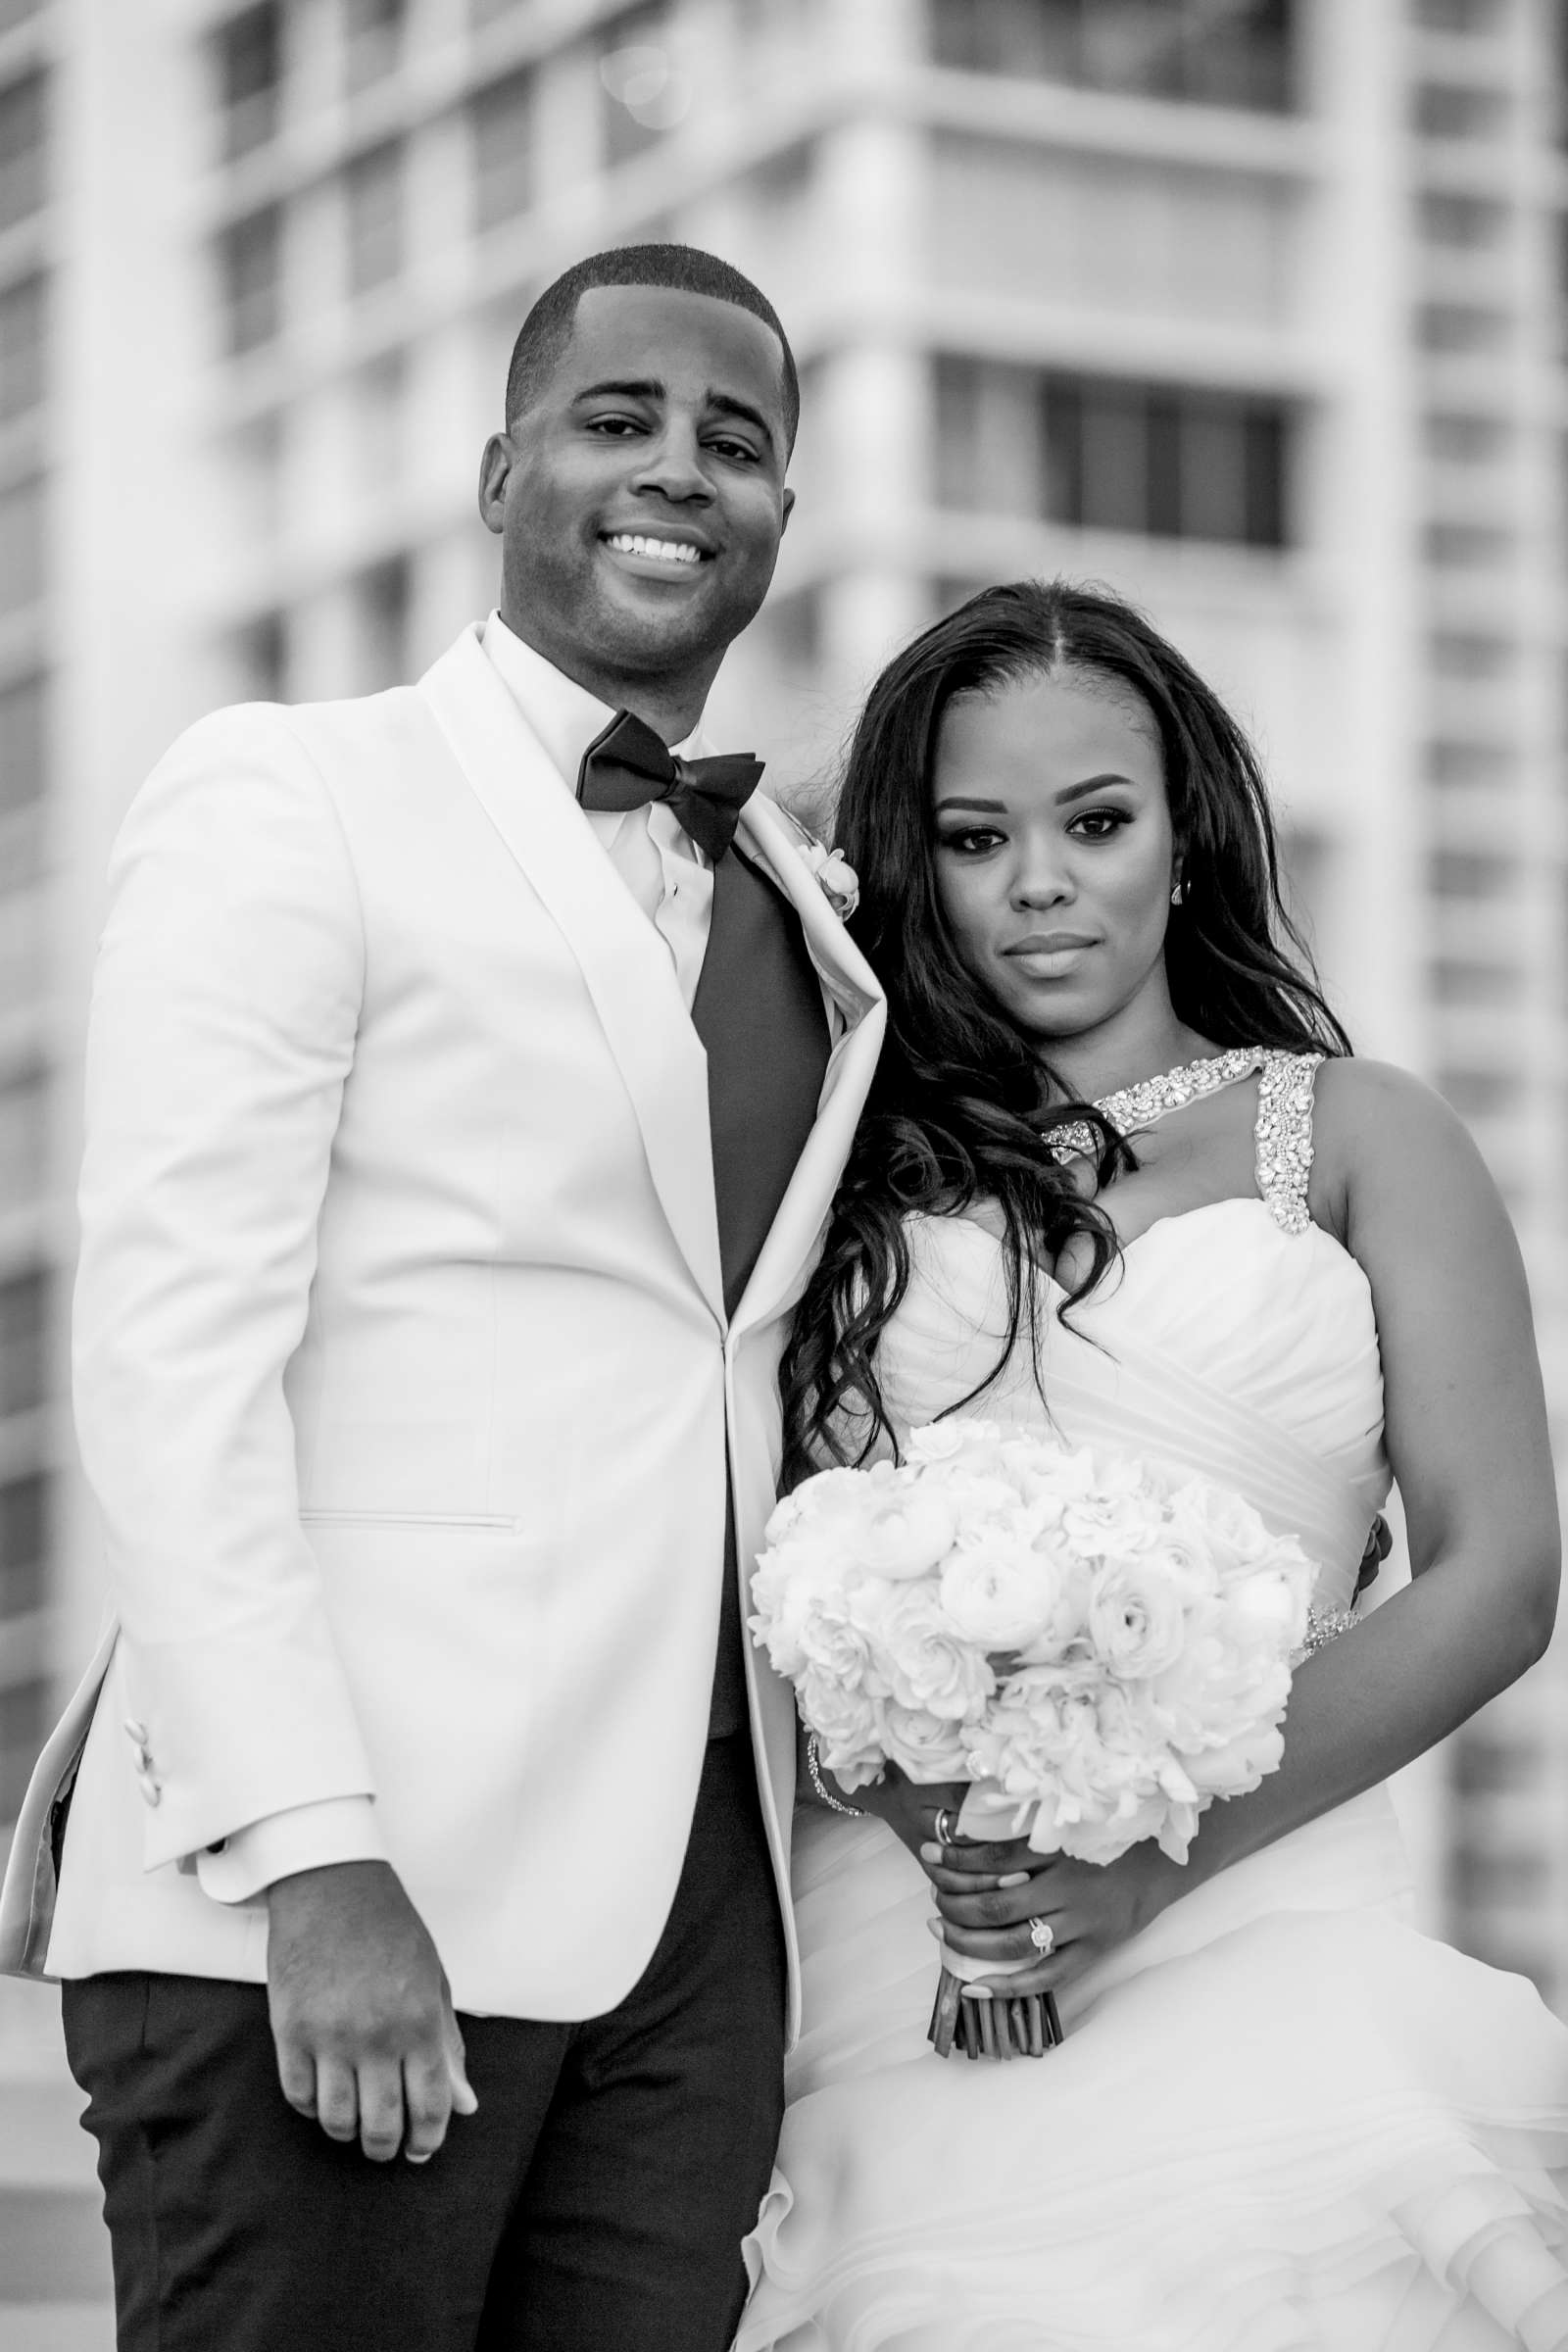 Coronado Community Center Wedding coordinated by First Comes Love Weddings & Events, Nikia and Charles Wedding Photo #94 by True Photography